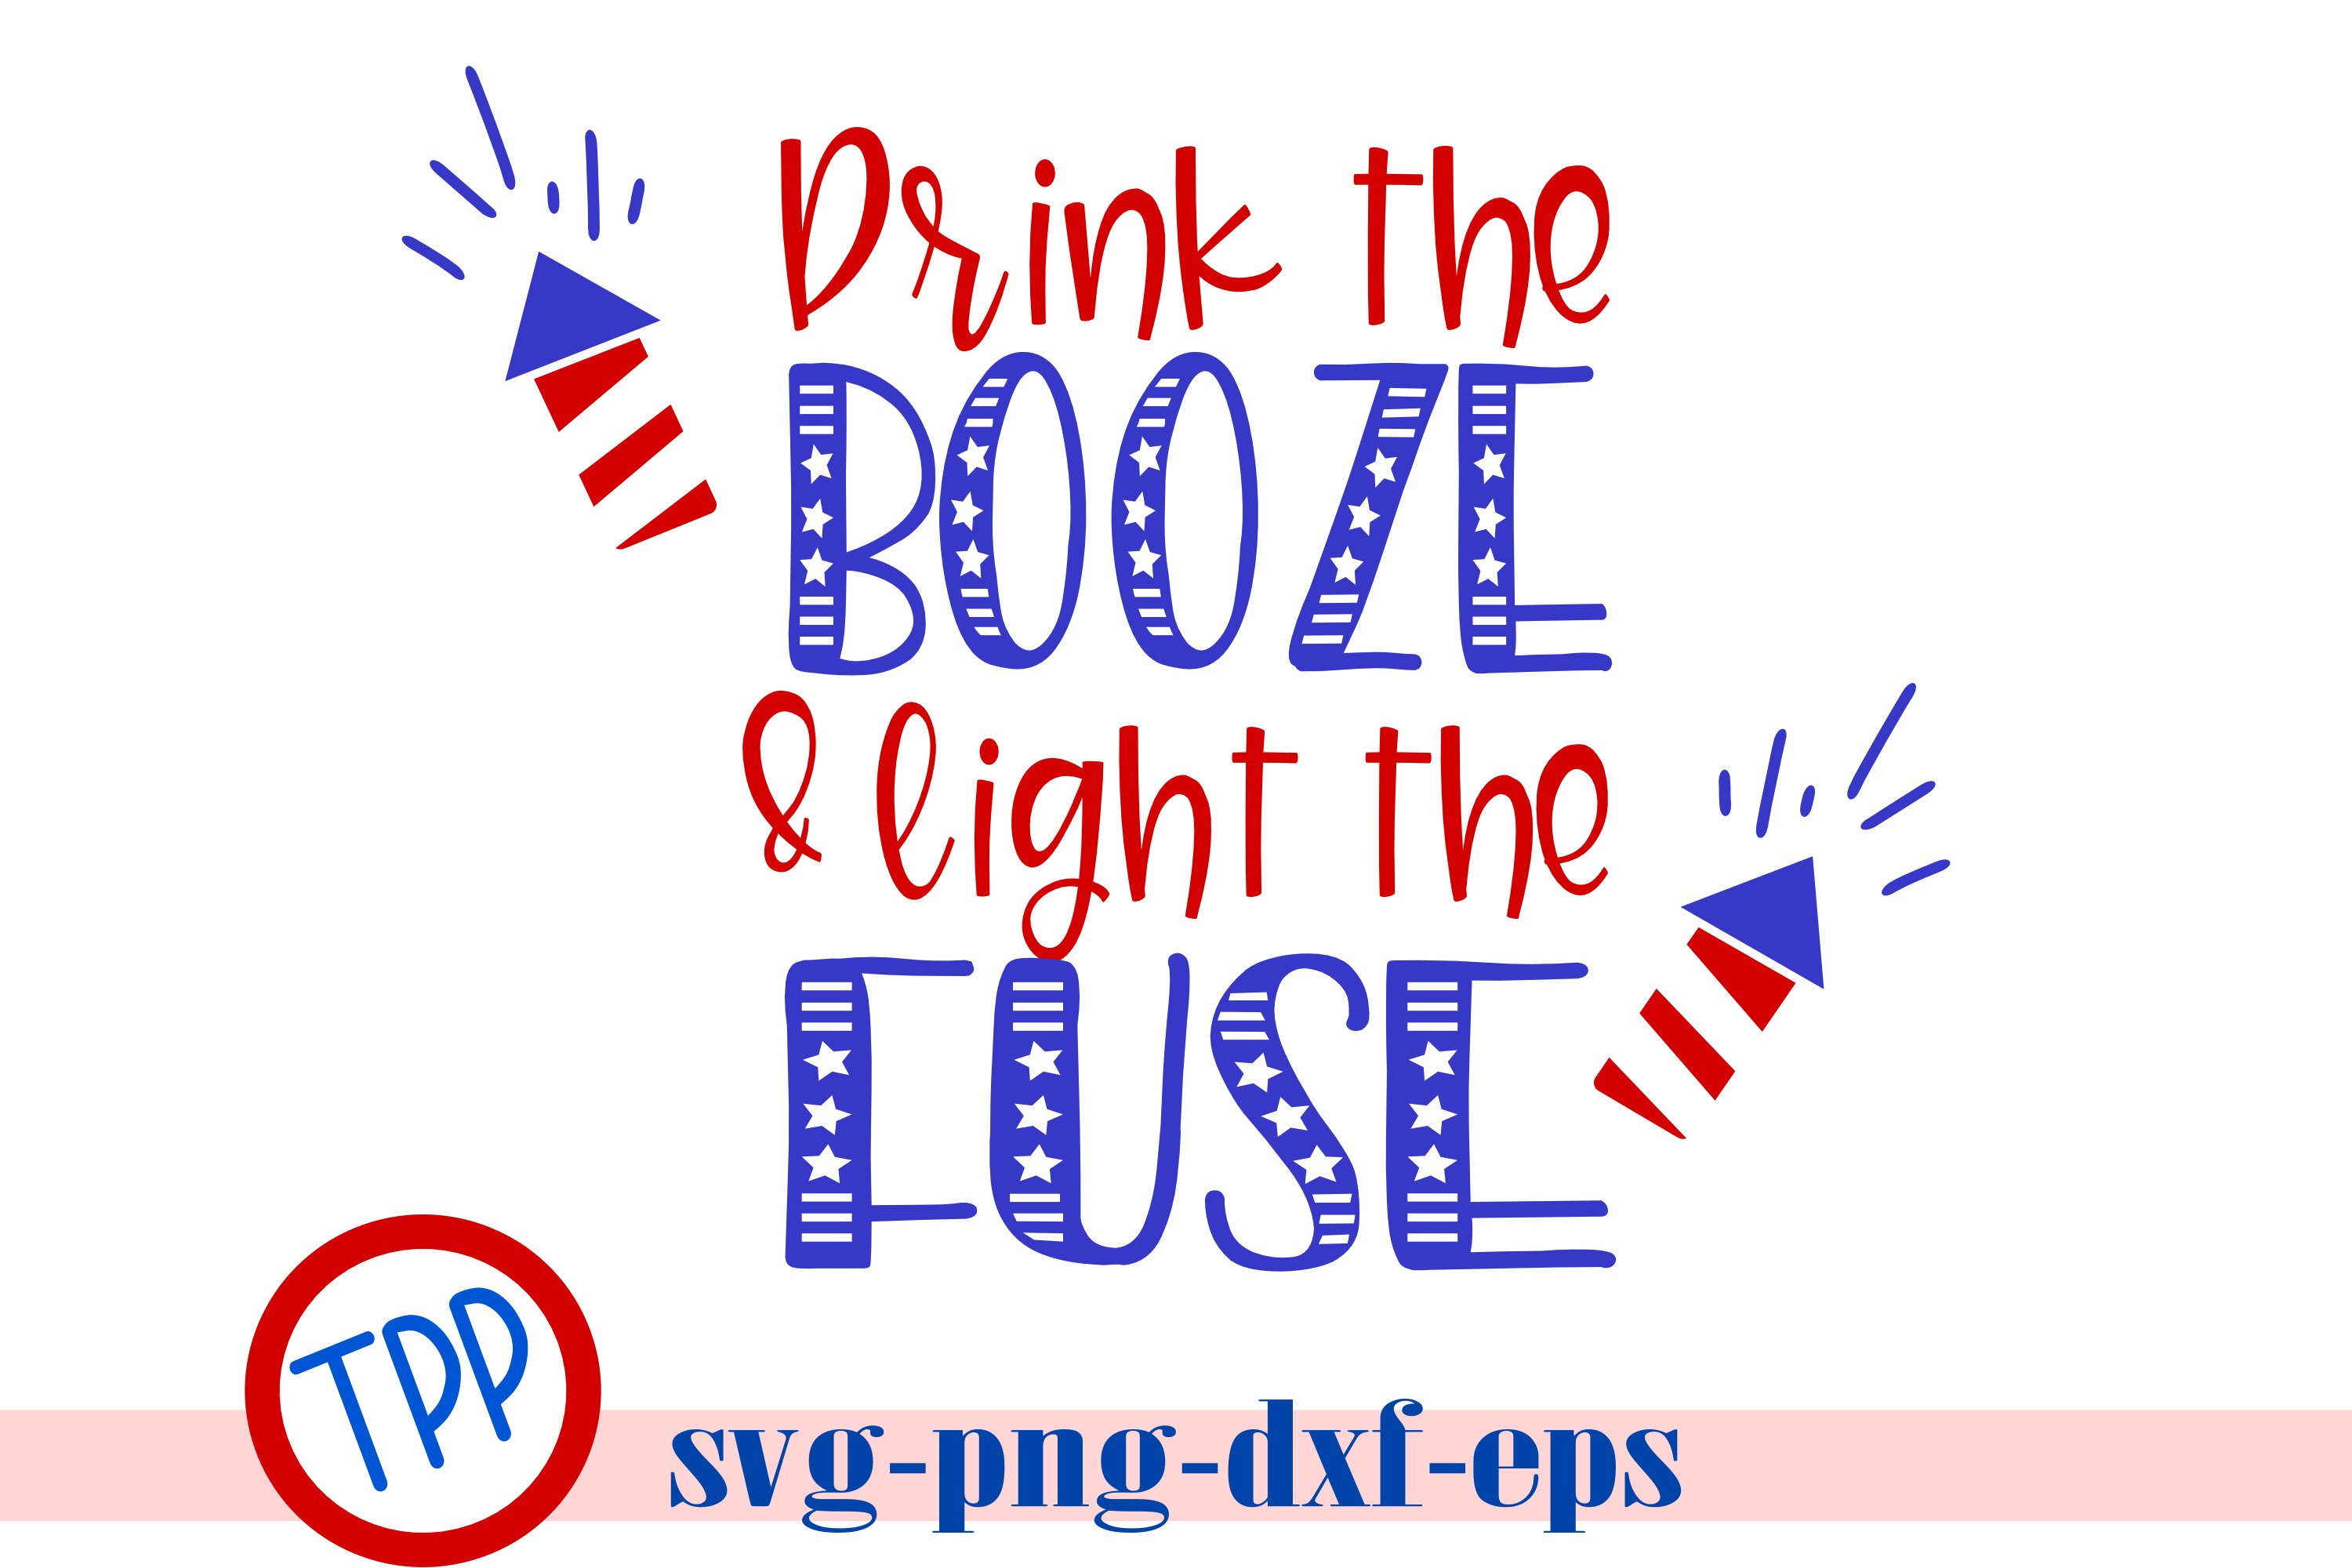 4th of July cut file, Drink the Booze and Light the Fuse svg example image 1